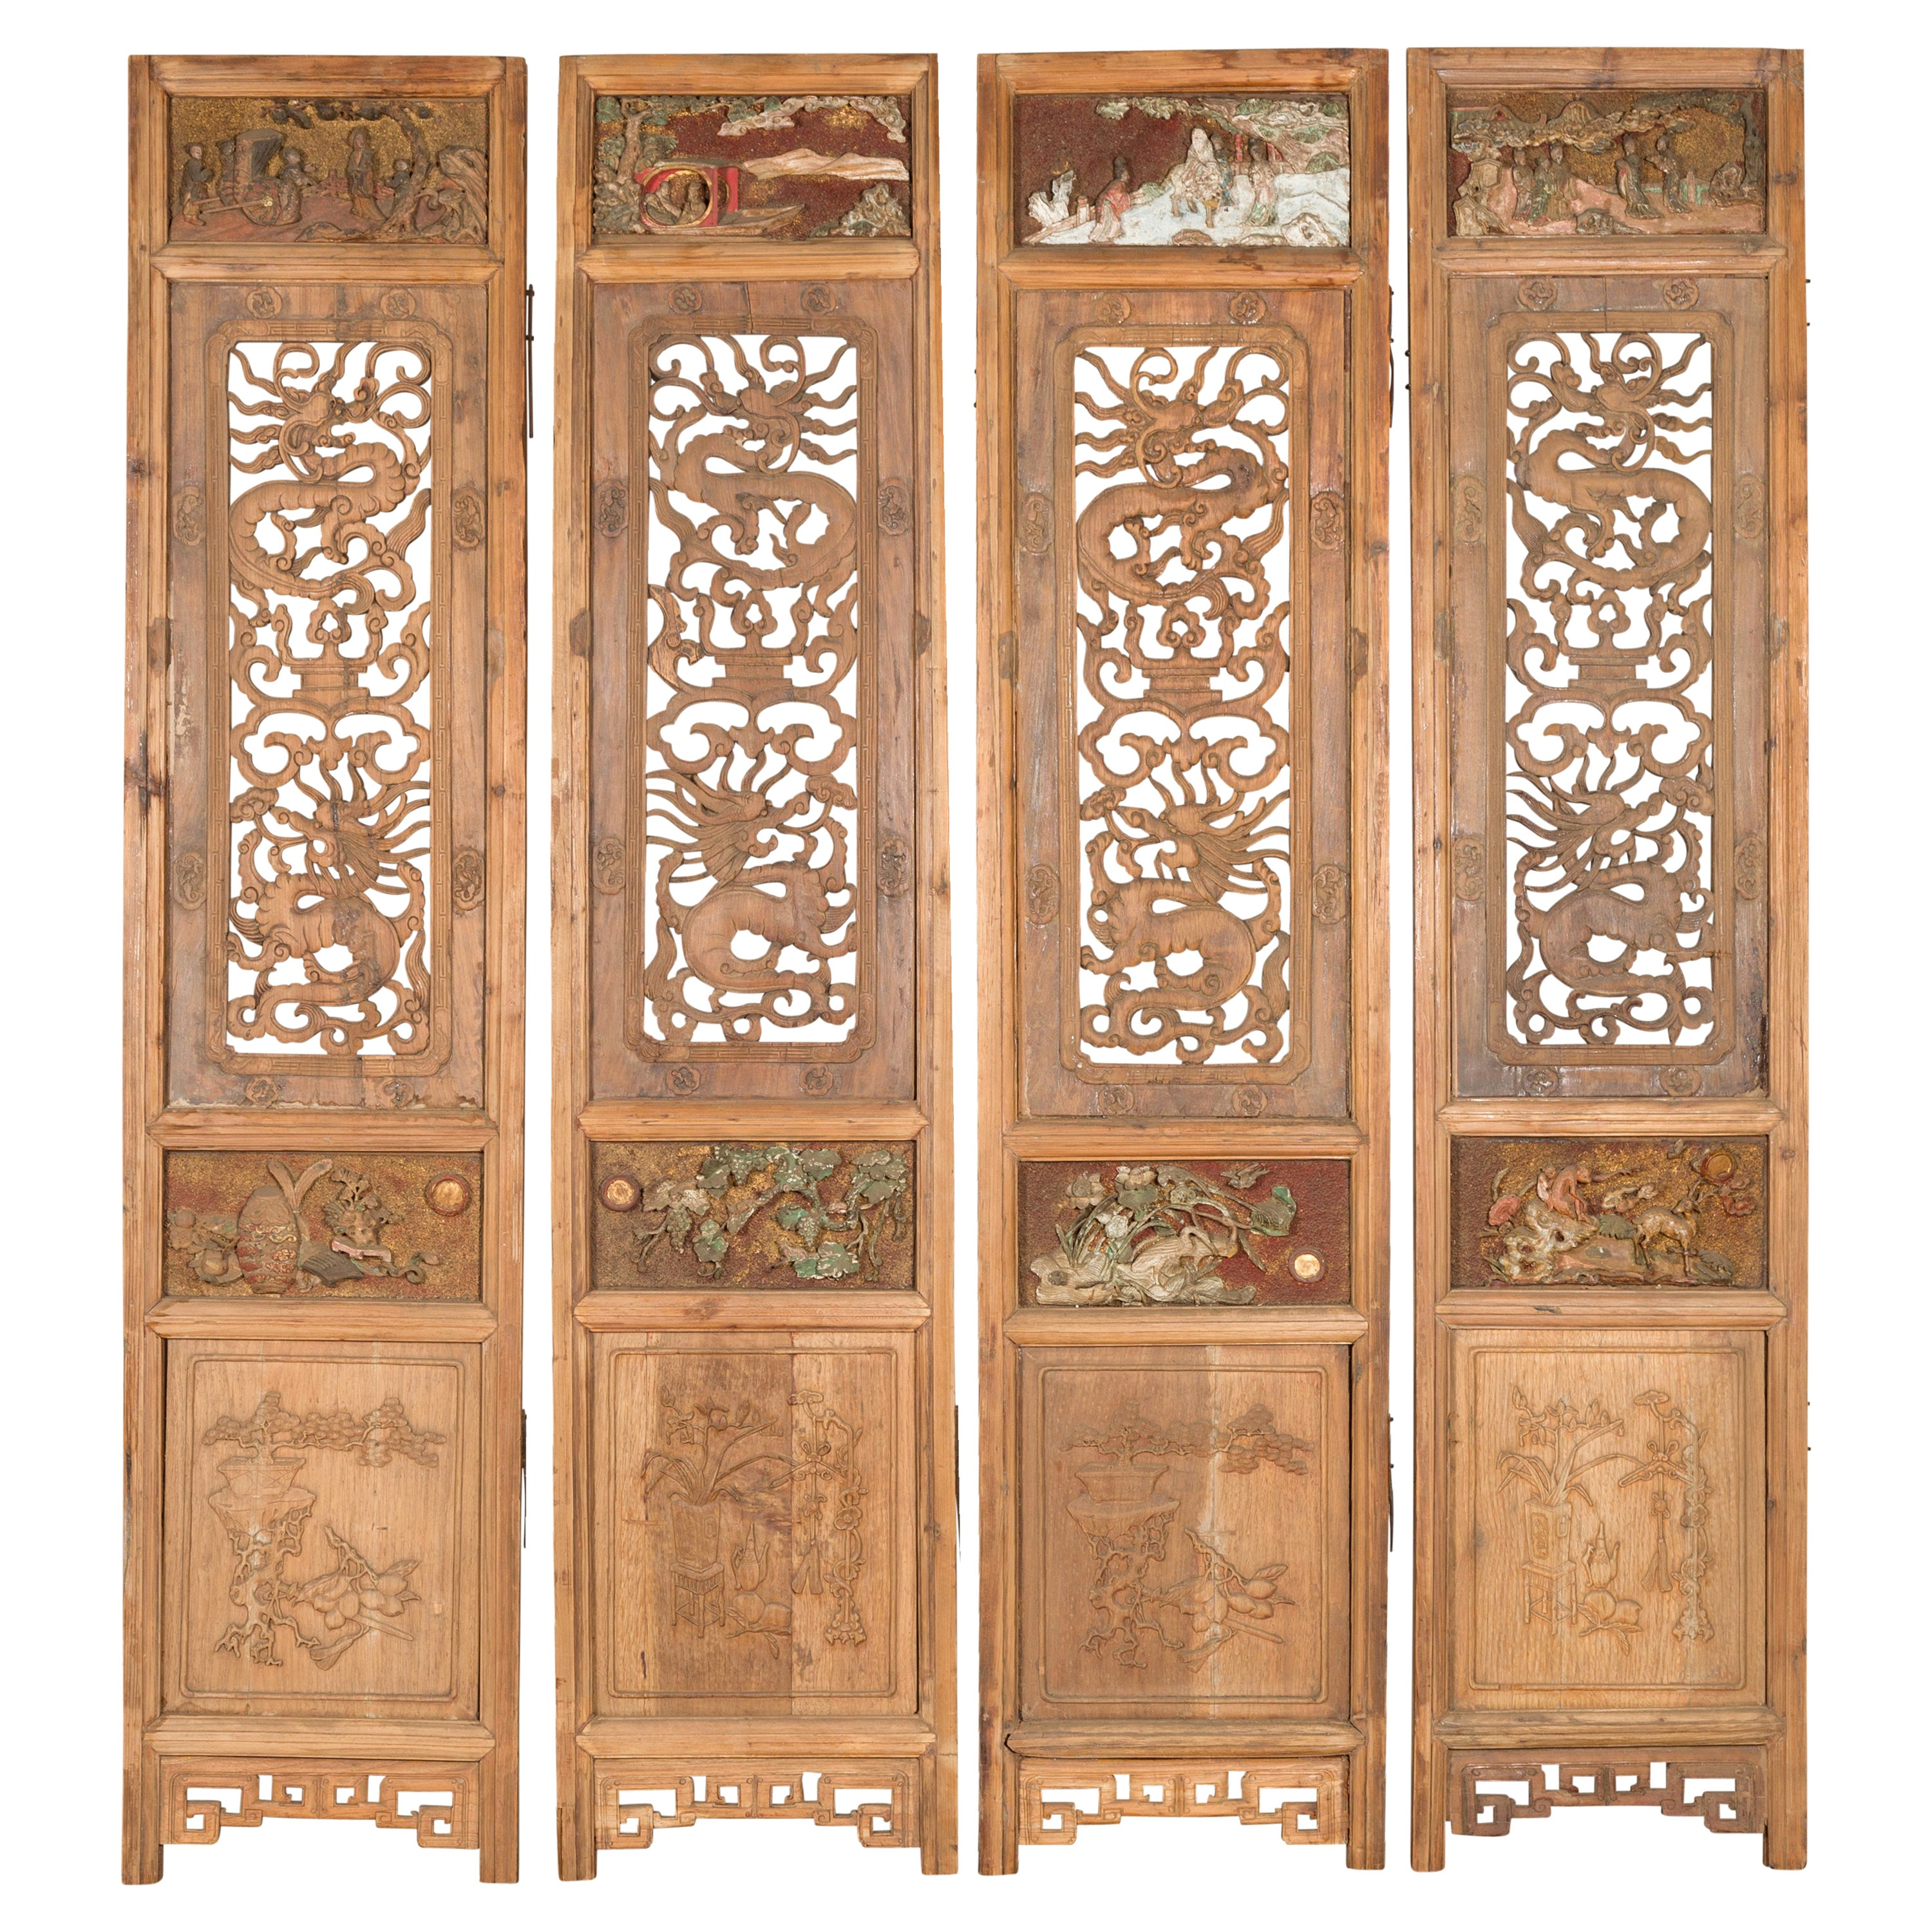 Set of Four Chinese 19th Century Qing Dynasty Carved Wooden Screens with Dragons